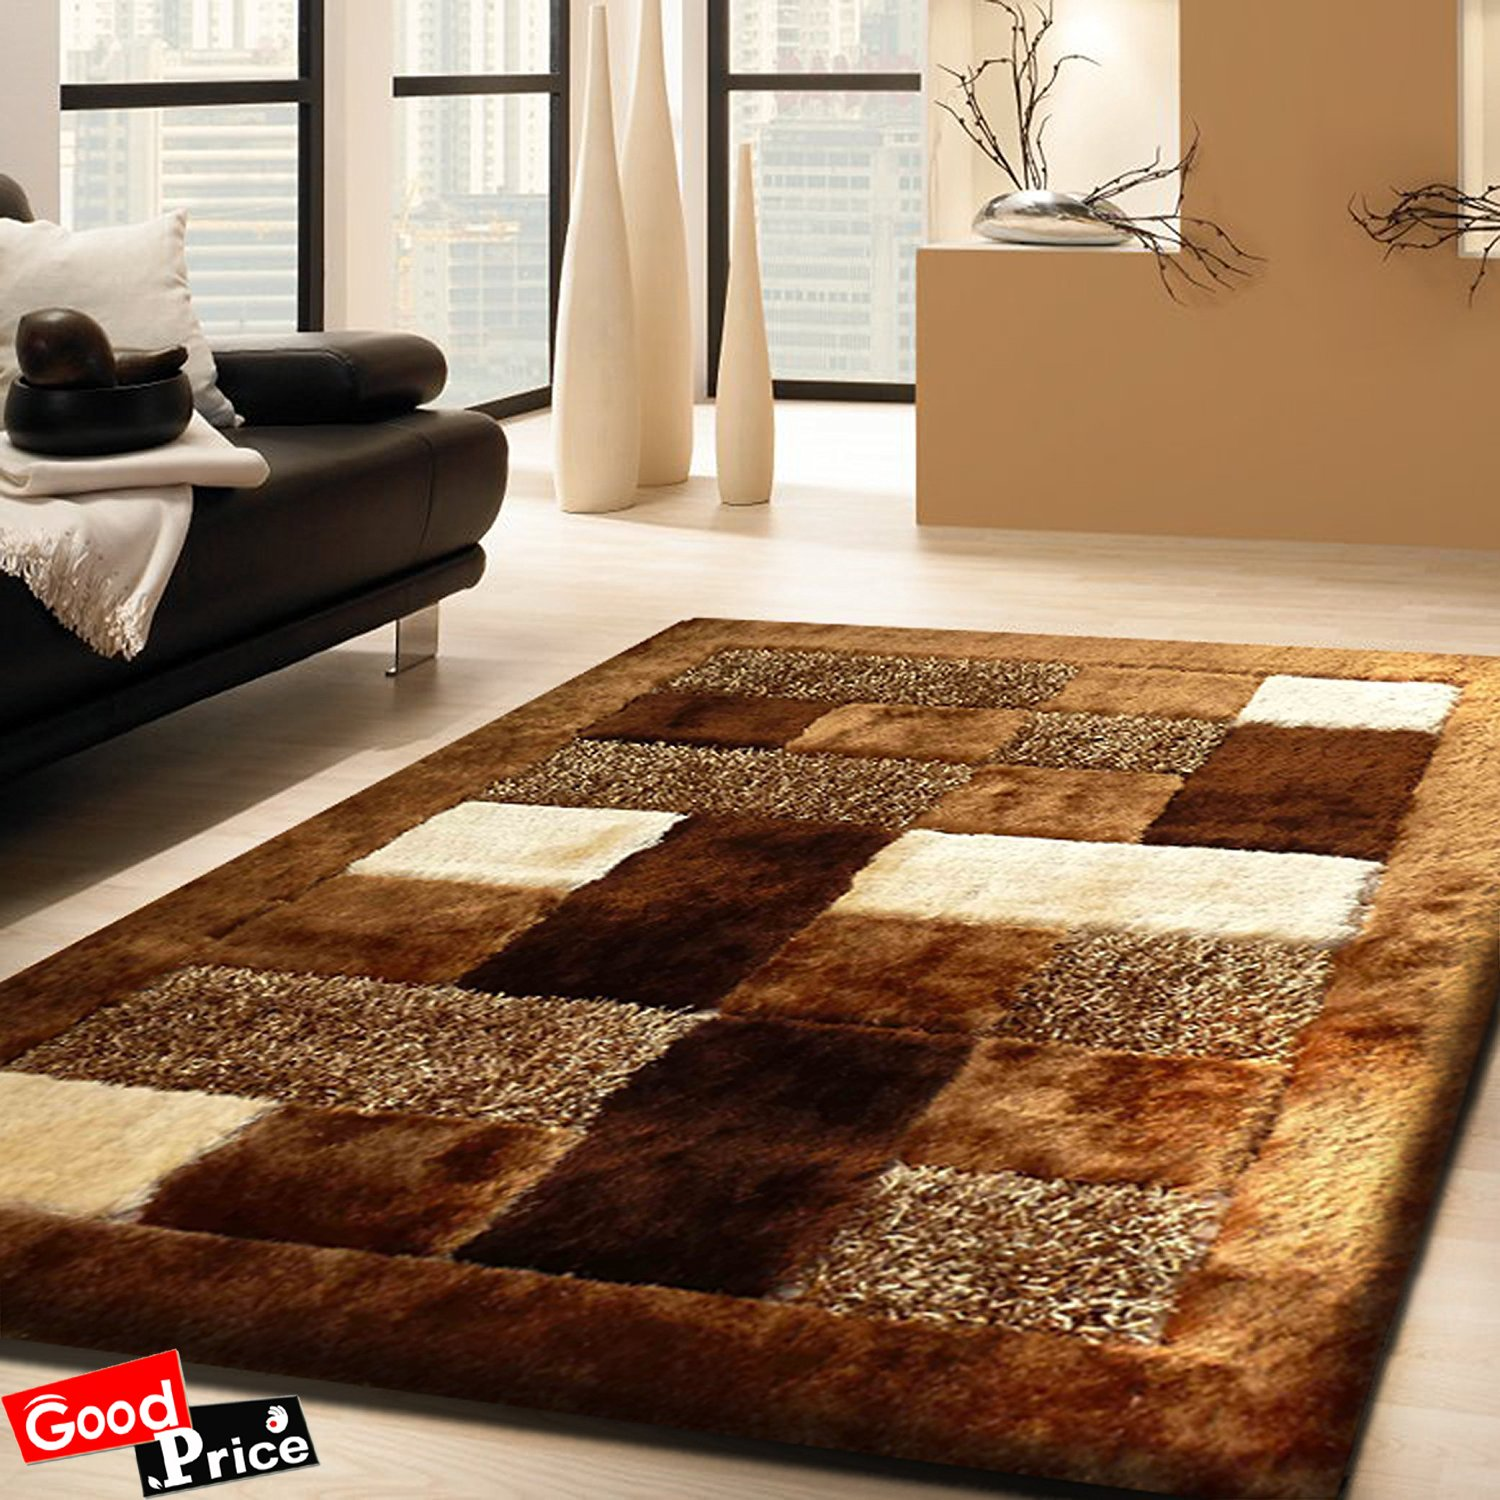 buy good price multicolor modern 5d shaggy rugs long lasting rh amazon in living room carpet prices in kenya living room carpet prices in kenya